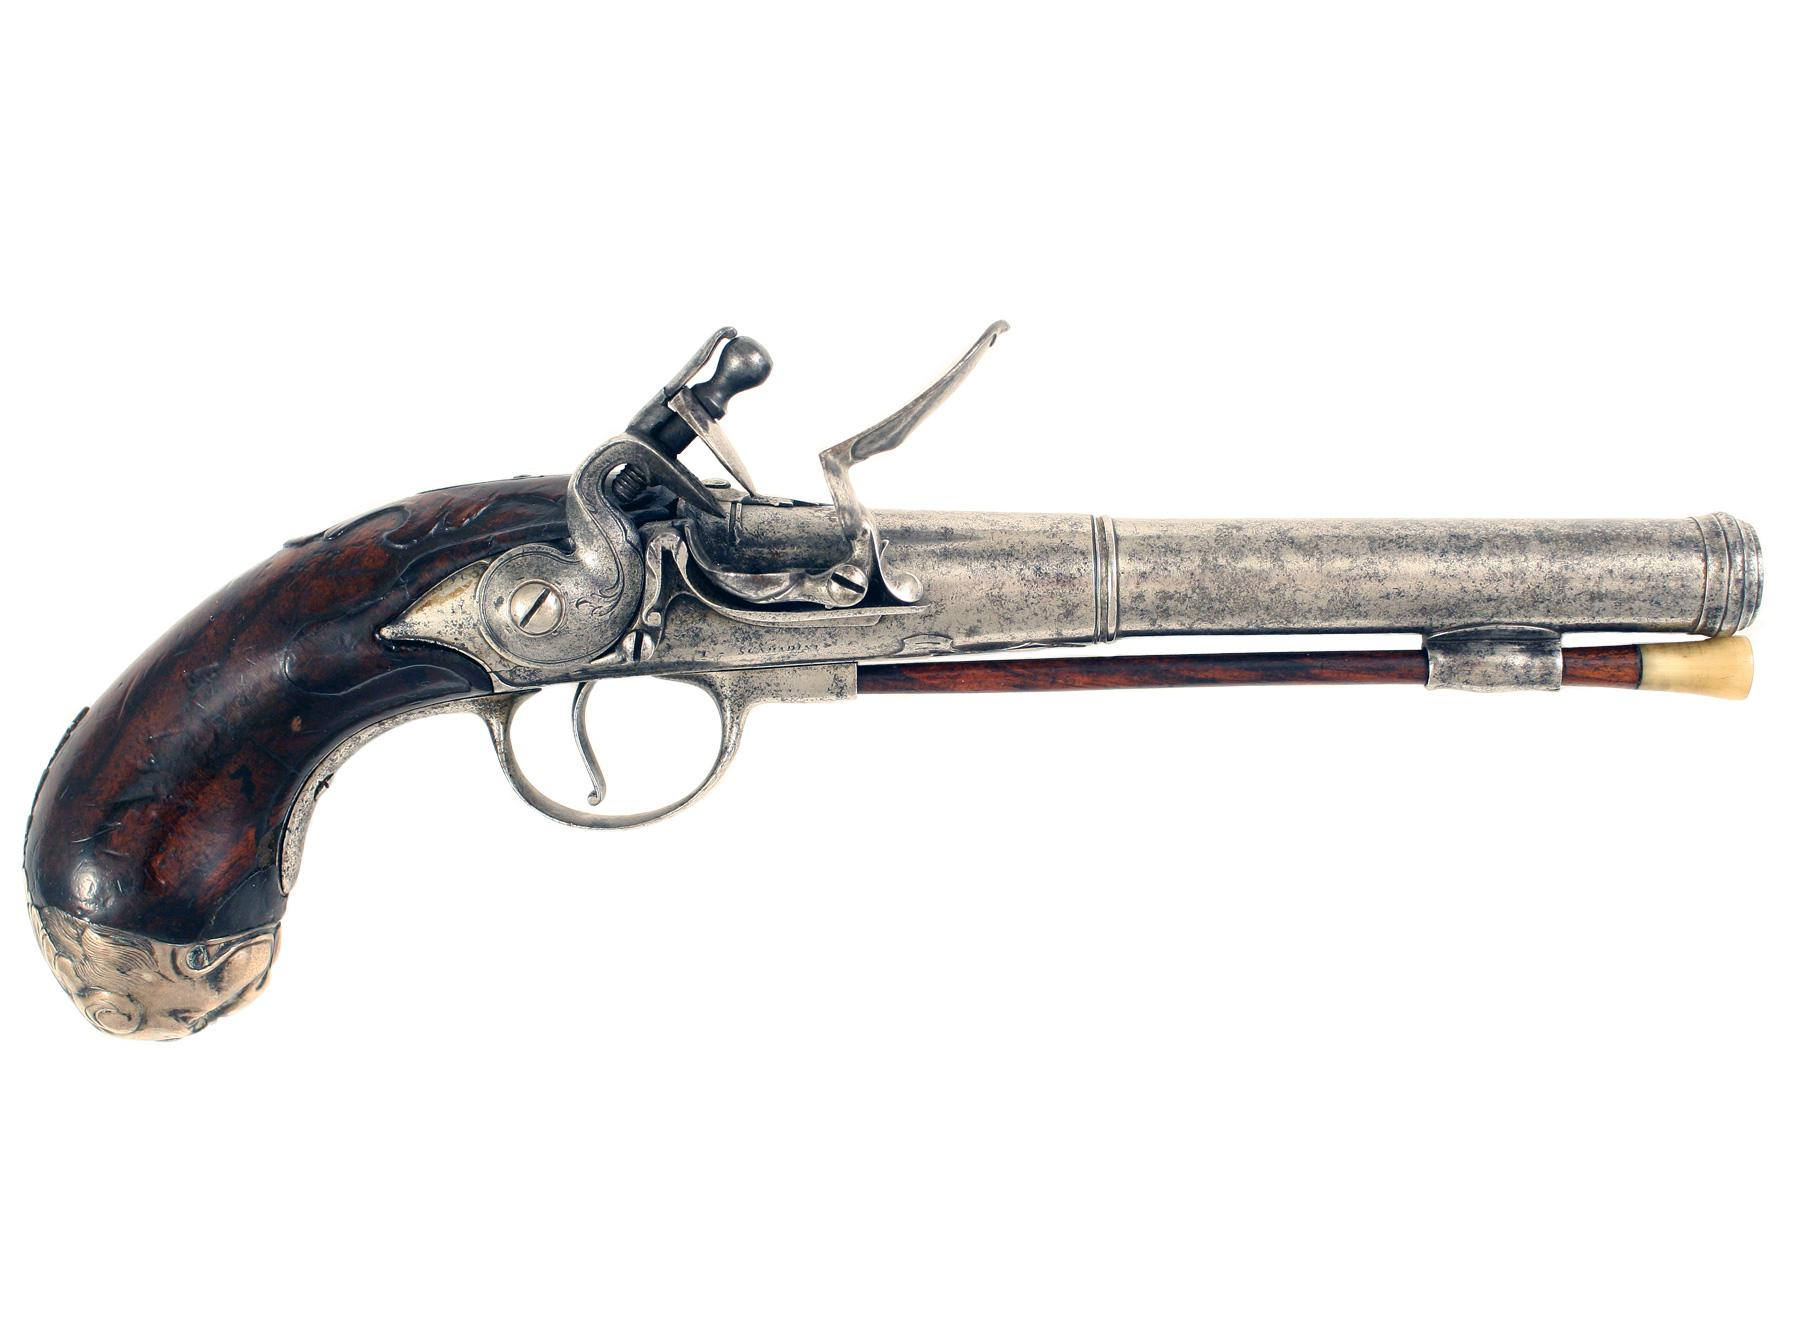 An Untouched Pair of Queen Anne Pistols